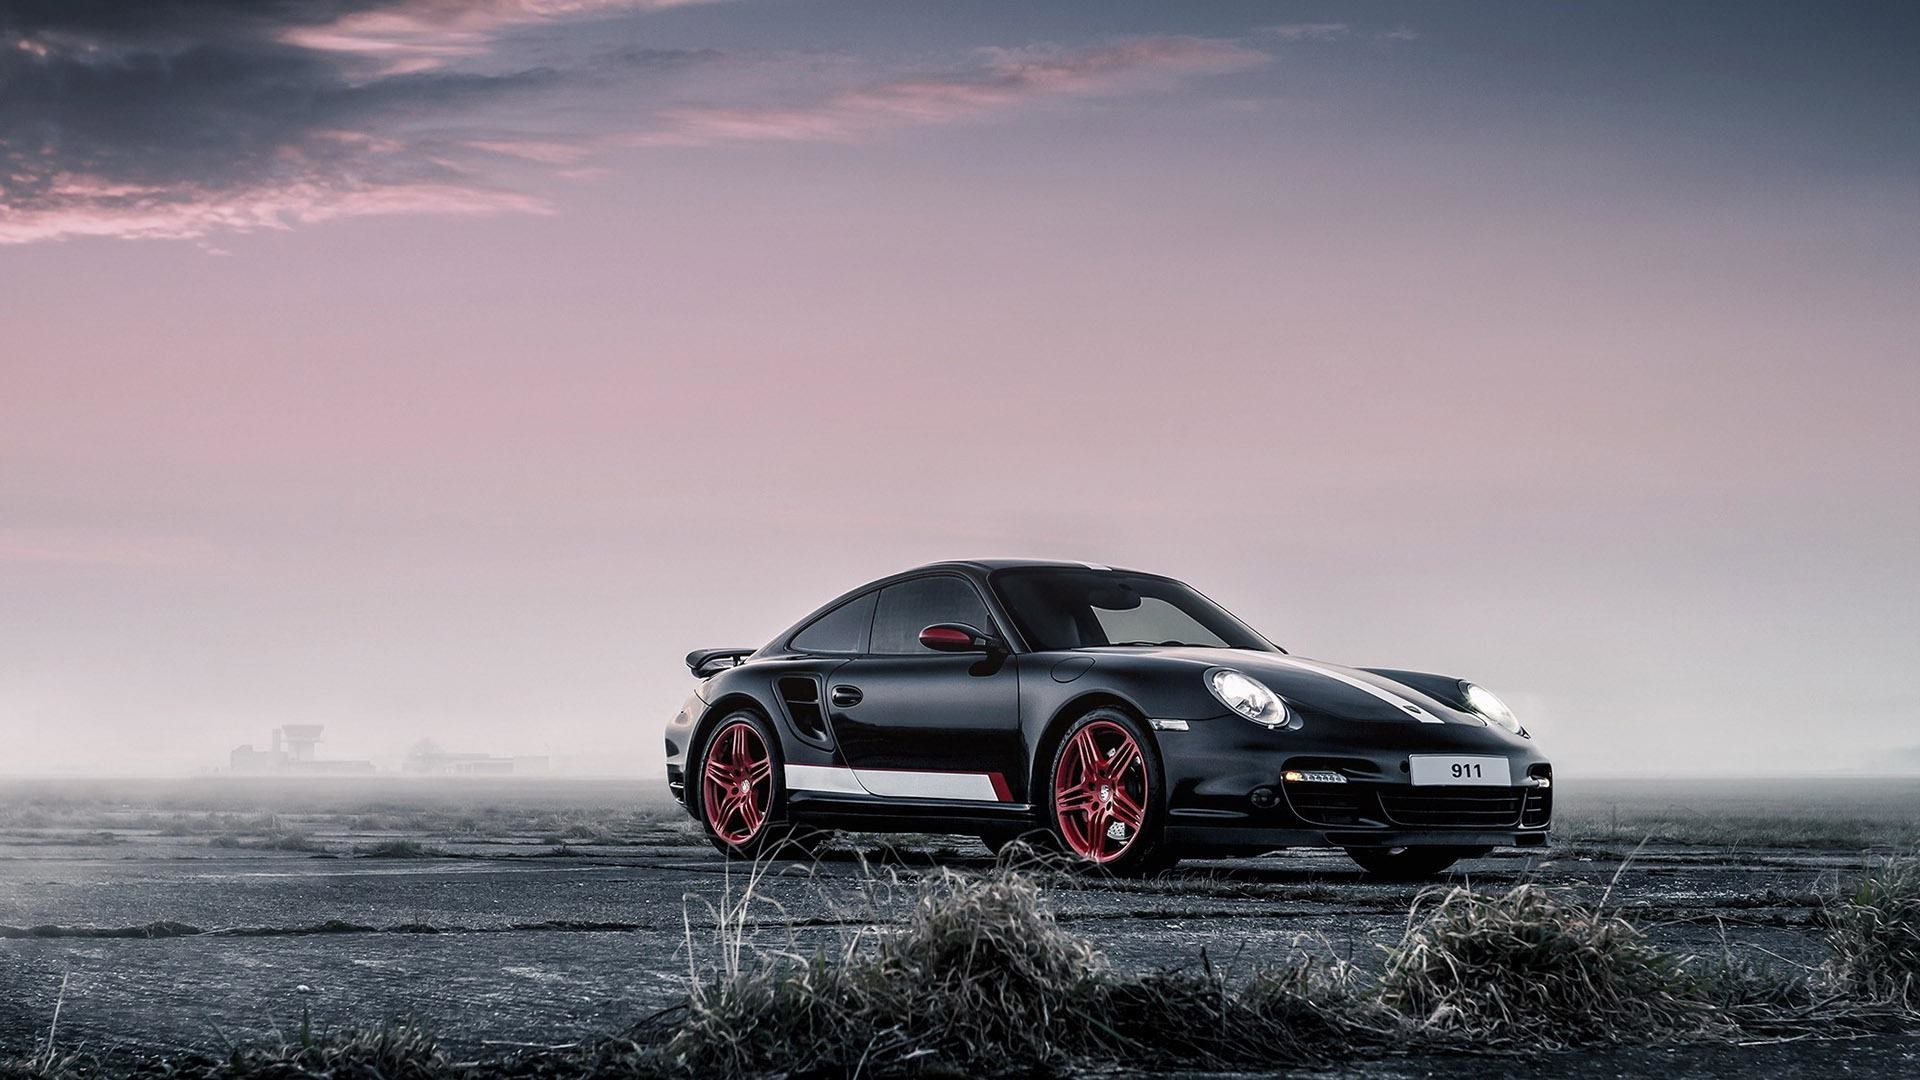 1920x1080 Black Porsche 911 race car